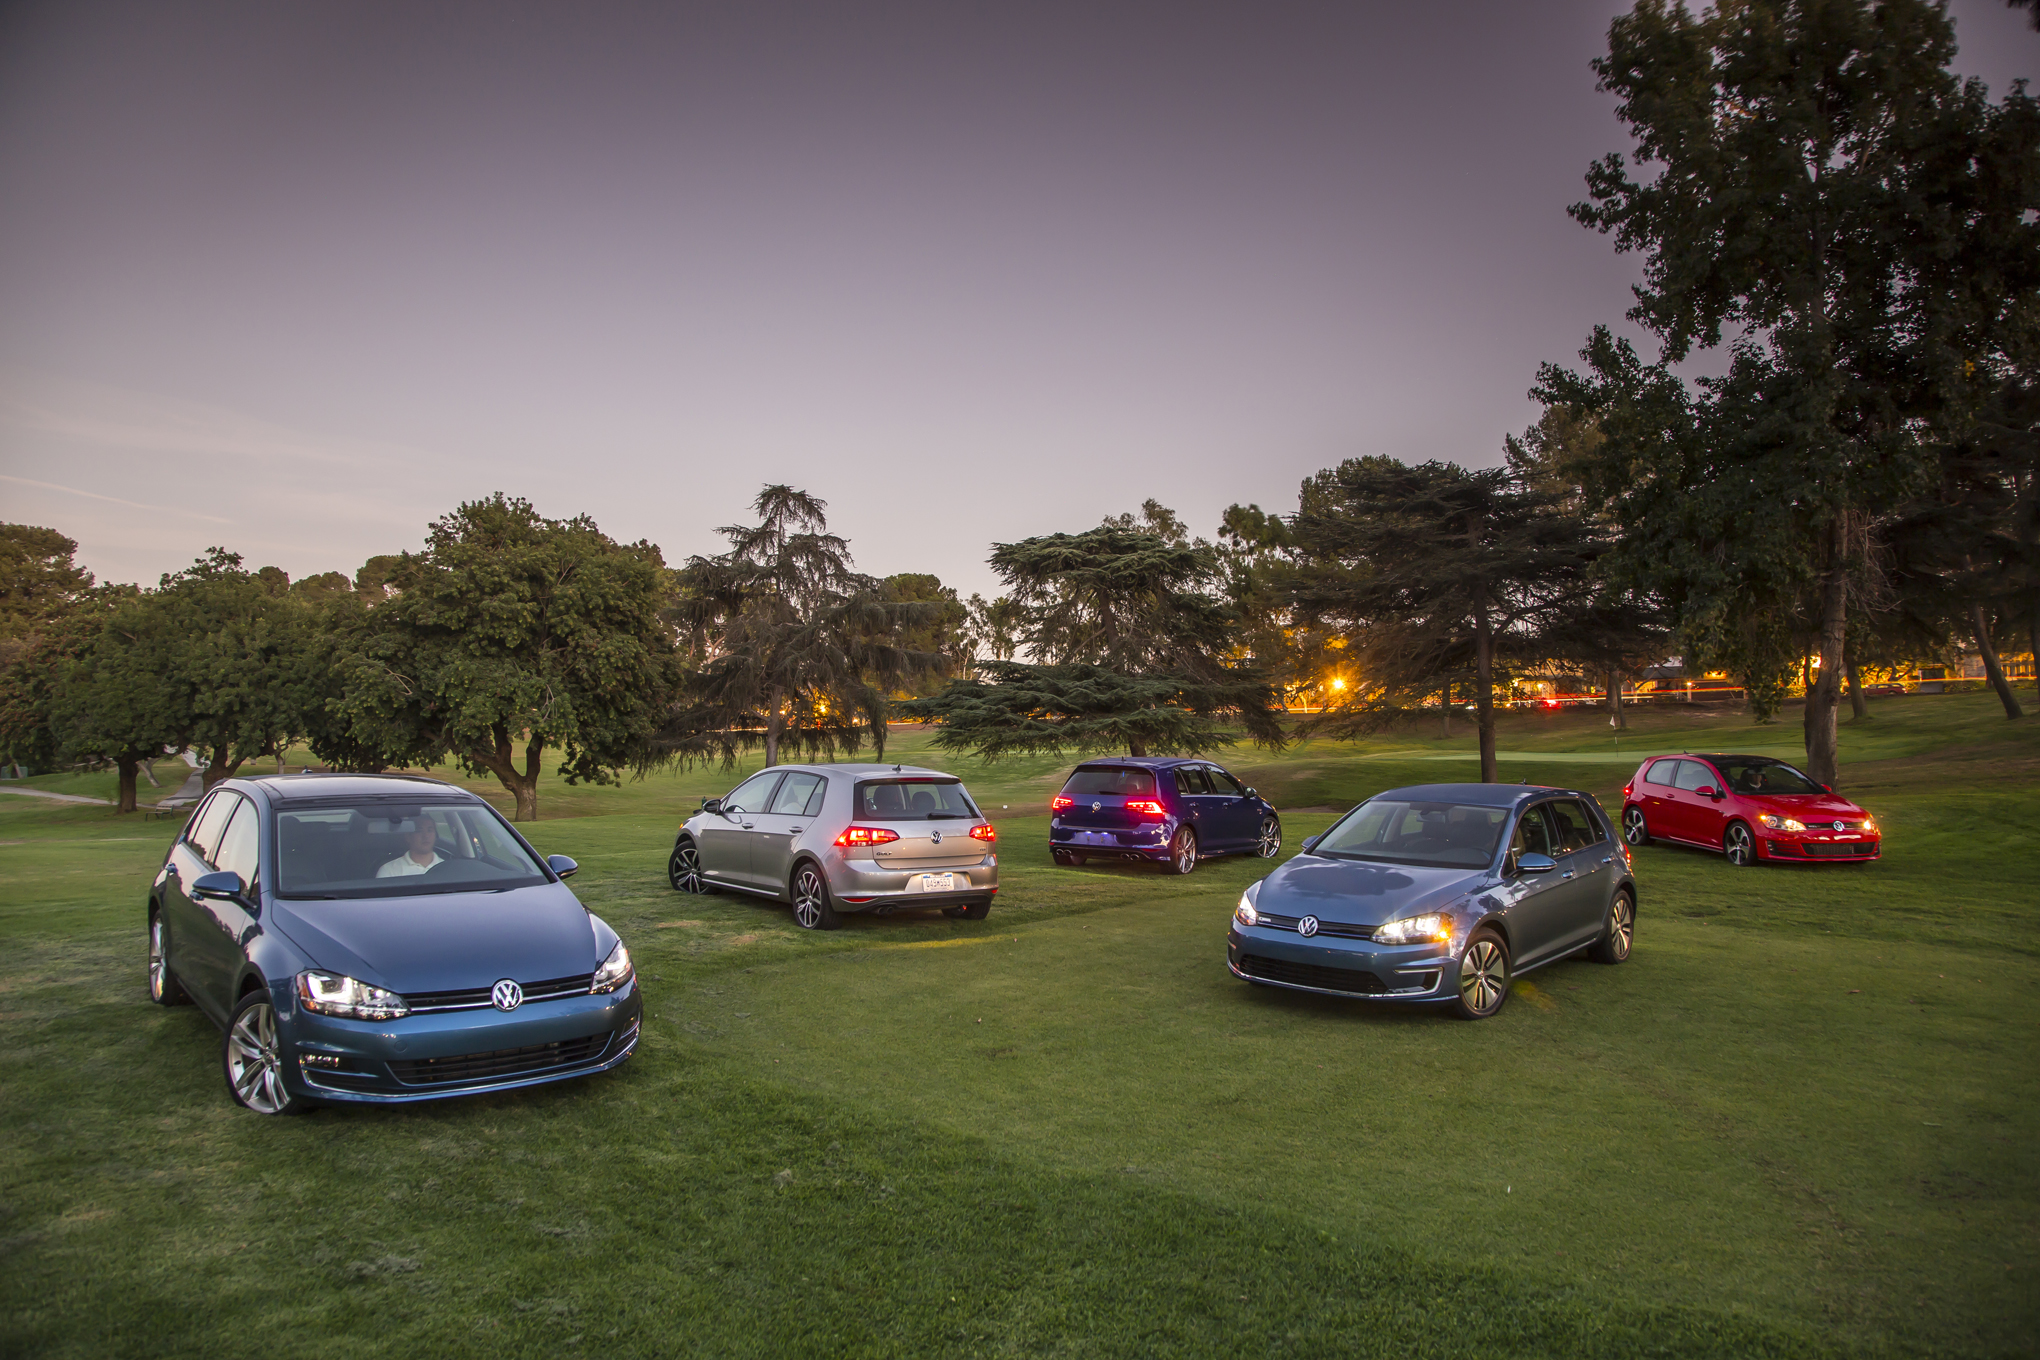 No matter what you're looking for in a compact hatchback, VW has you covered, from an electric commuter to a nearly 300-hp track toy and lots in between.